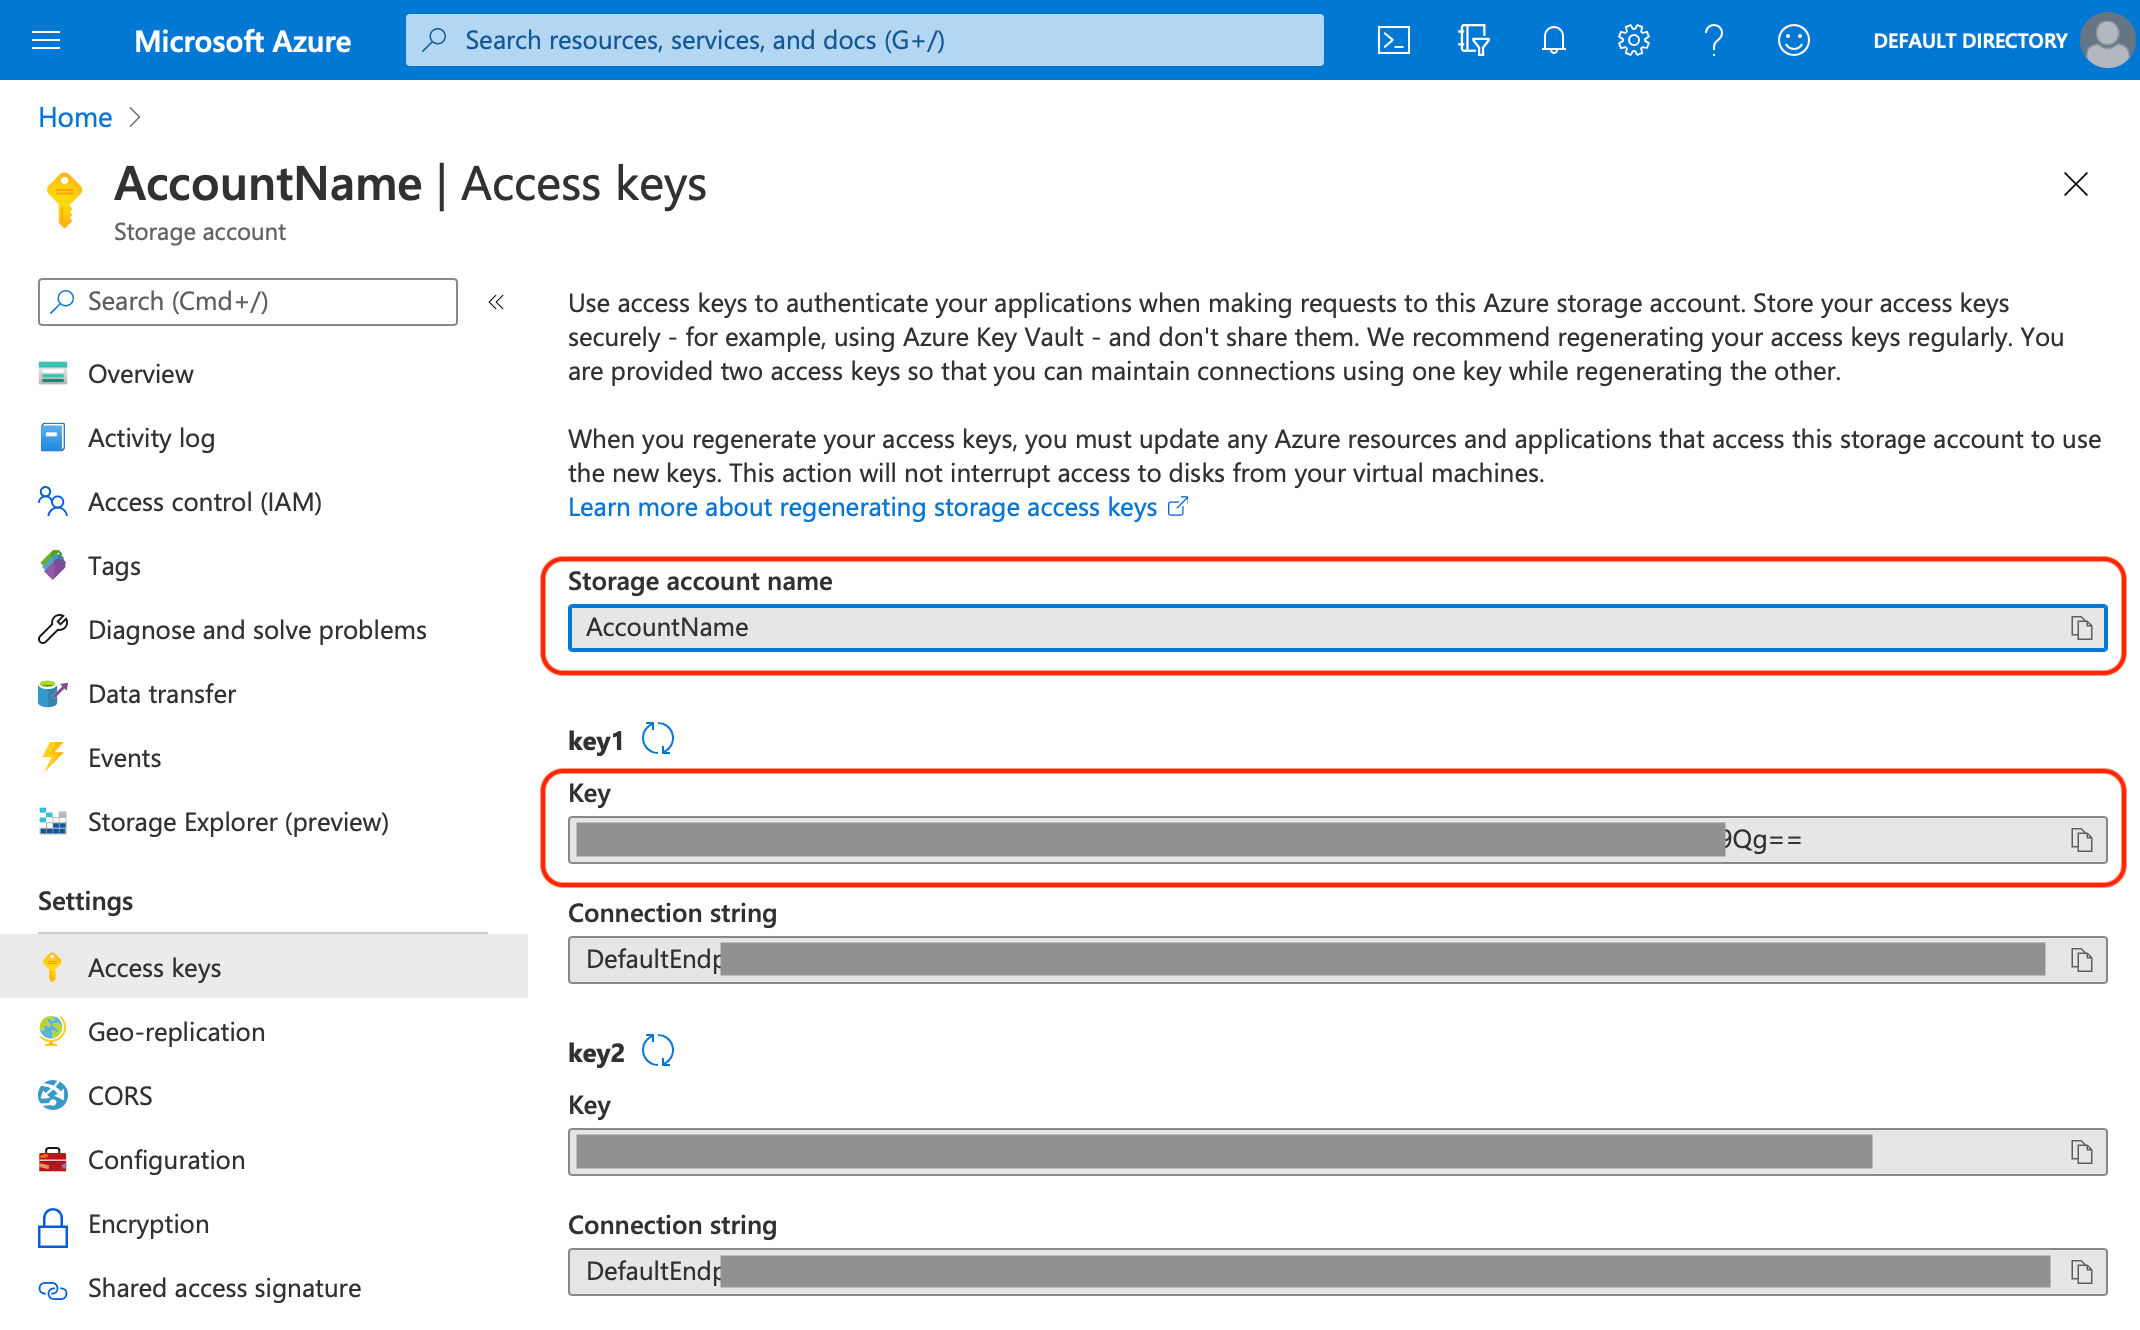 Microsoft Azure Storage Access Keys